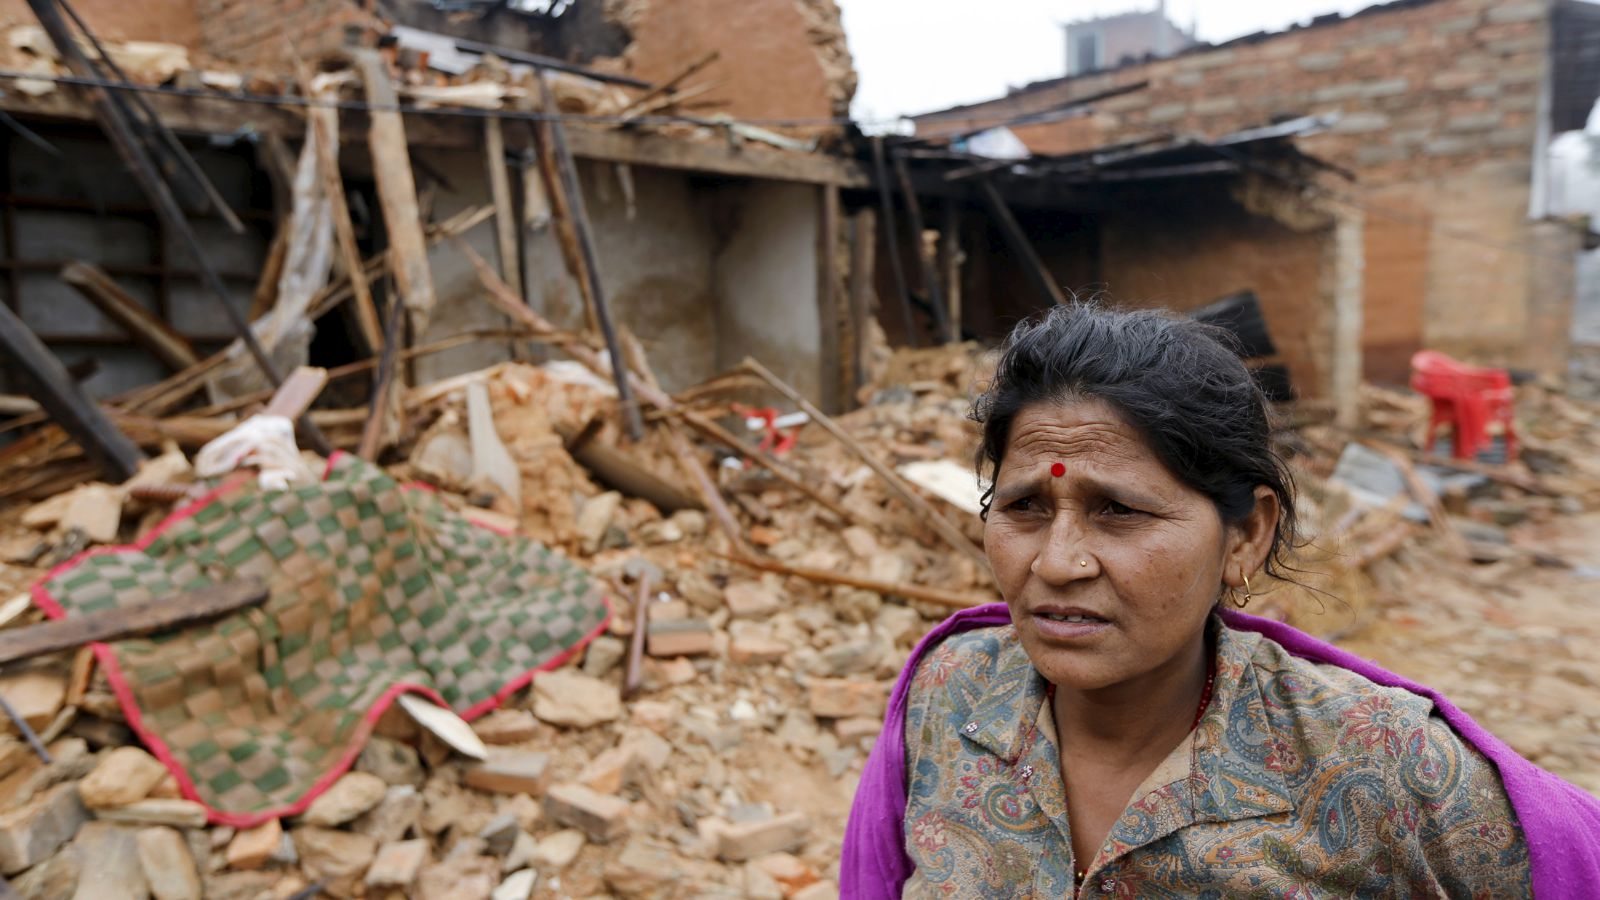 A Nepali woman stands in front of the wreckage of her house that was completely destroyed in Saturday's earthquake in Gorkha, Nepal, April 30, 2015.